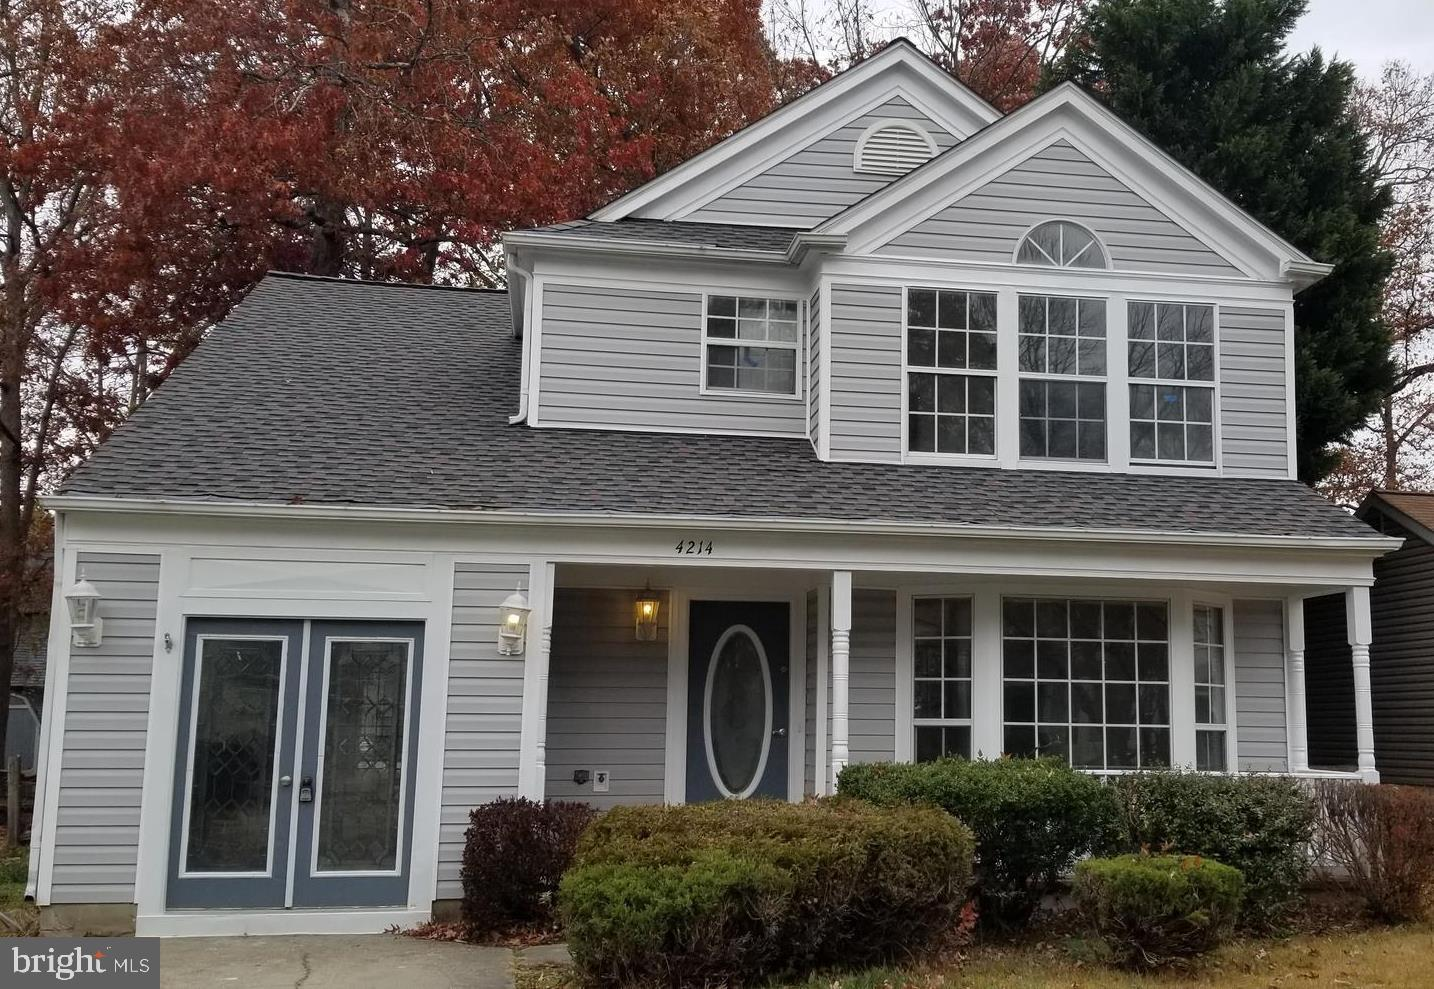 Fully renovated 4 beds, 2.5 bath home in nice neighborhood less than 5 mins from St. Charles Town Ce